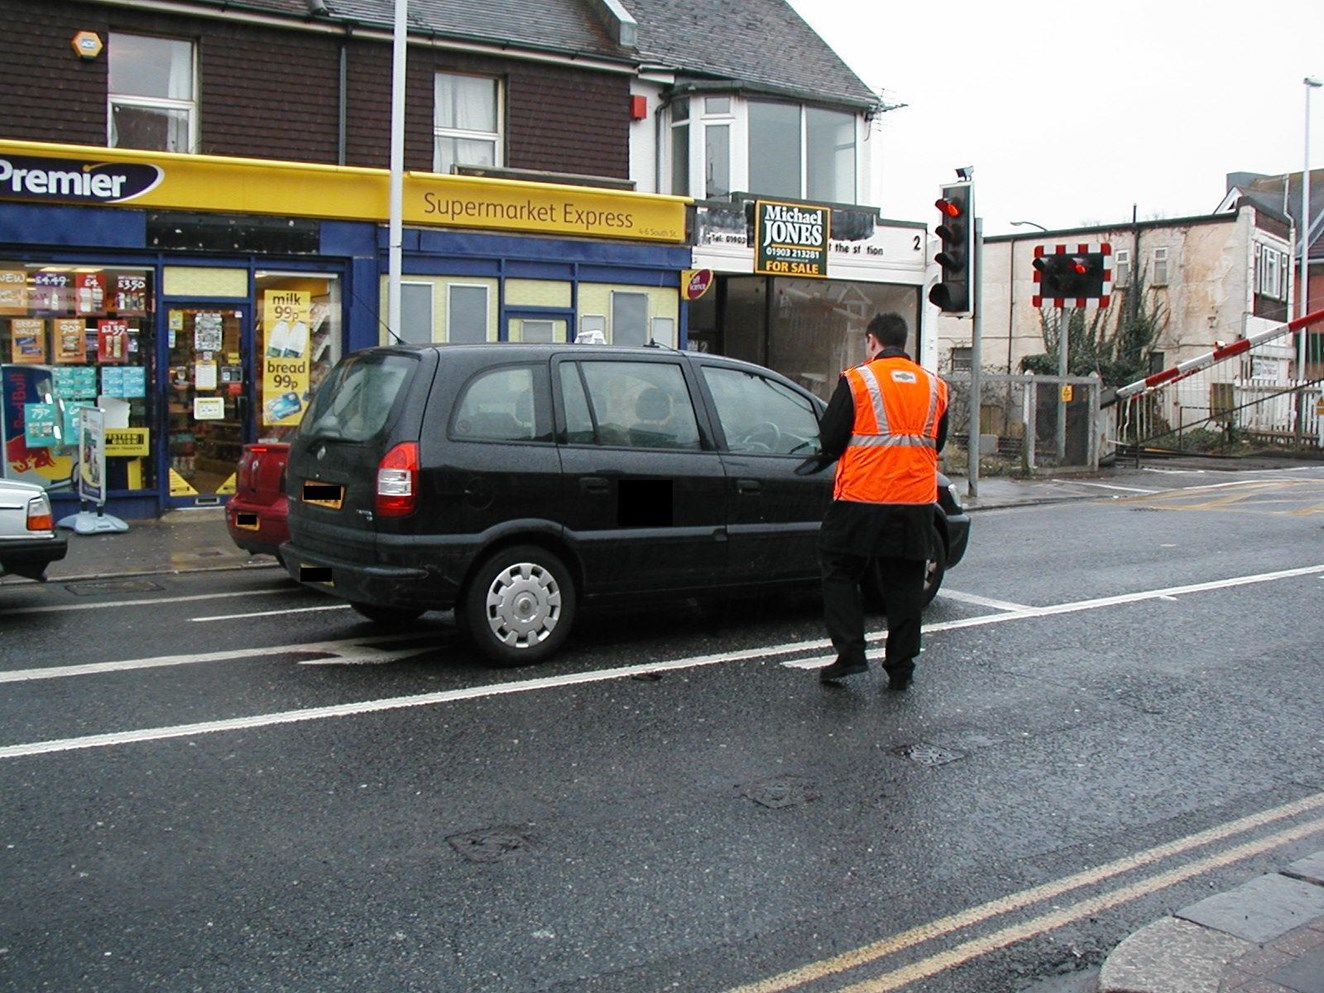 West Worthing Level Crossing Awareness Day